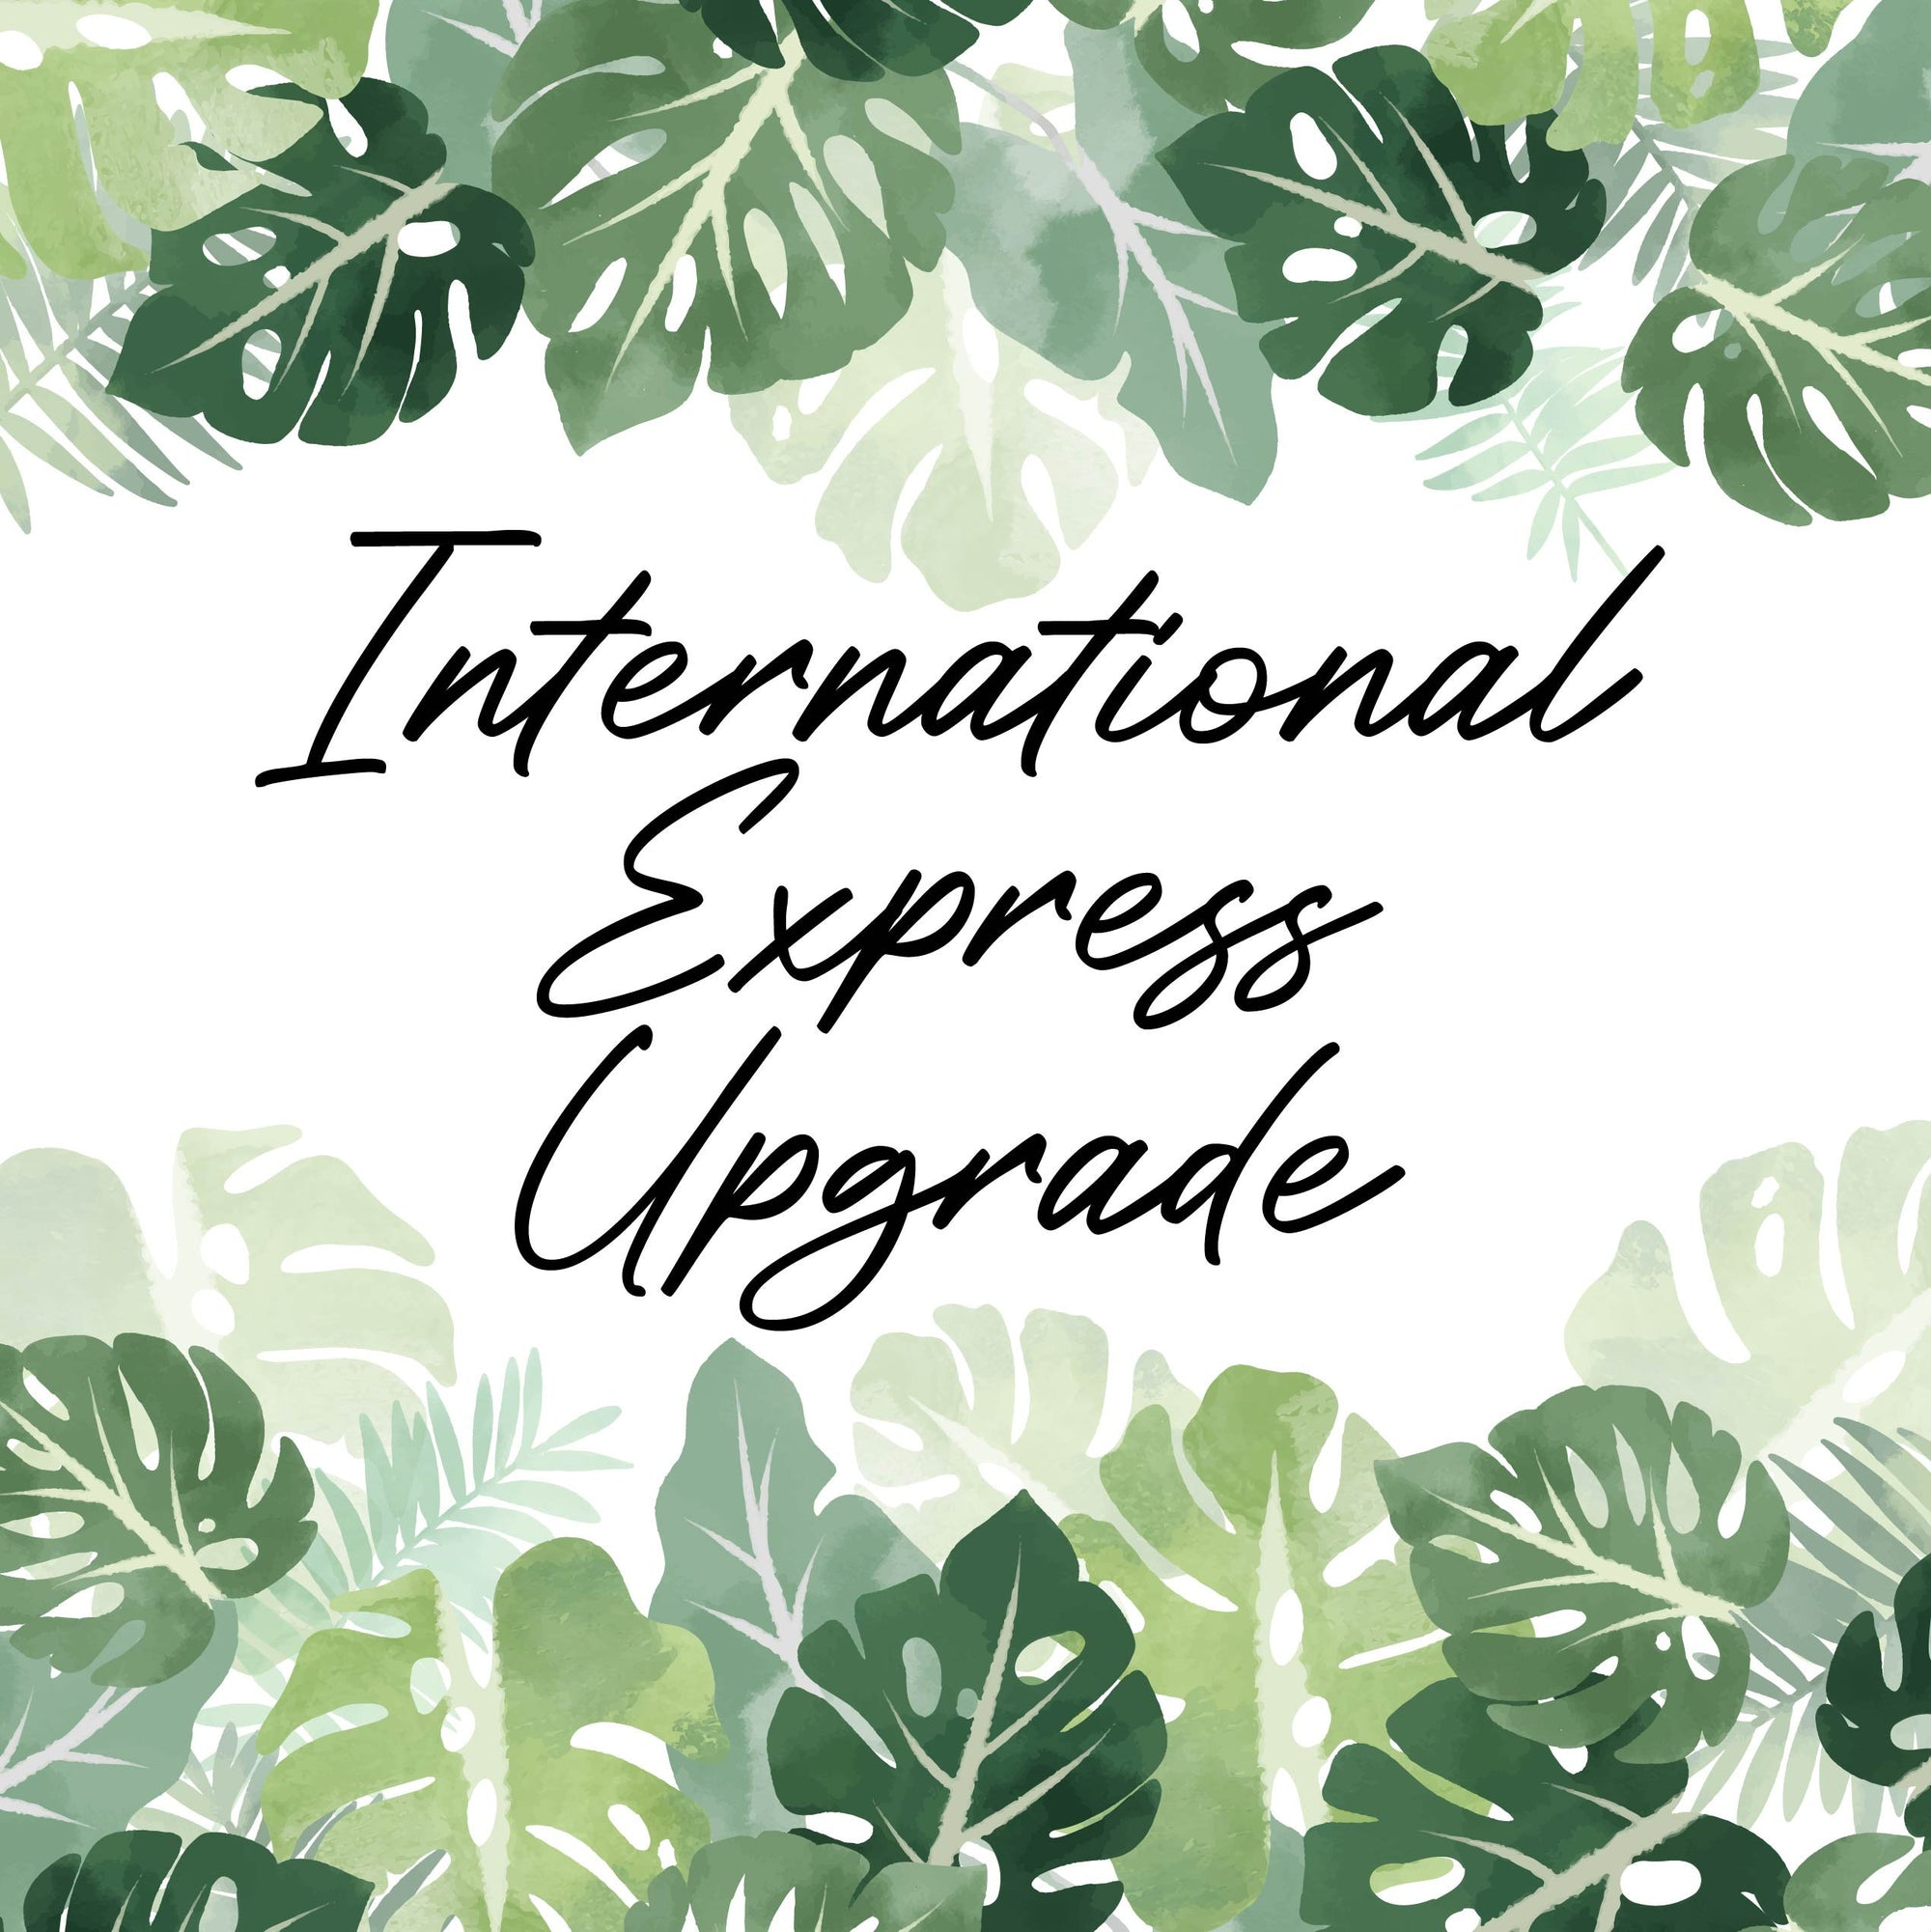 International Express Post Shipping Upgrade